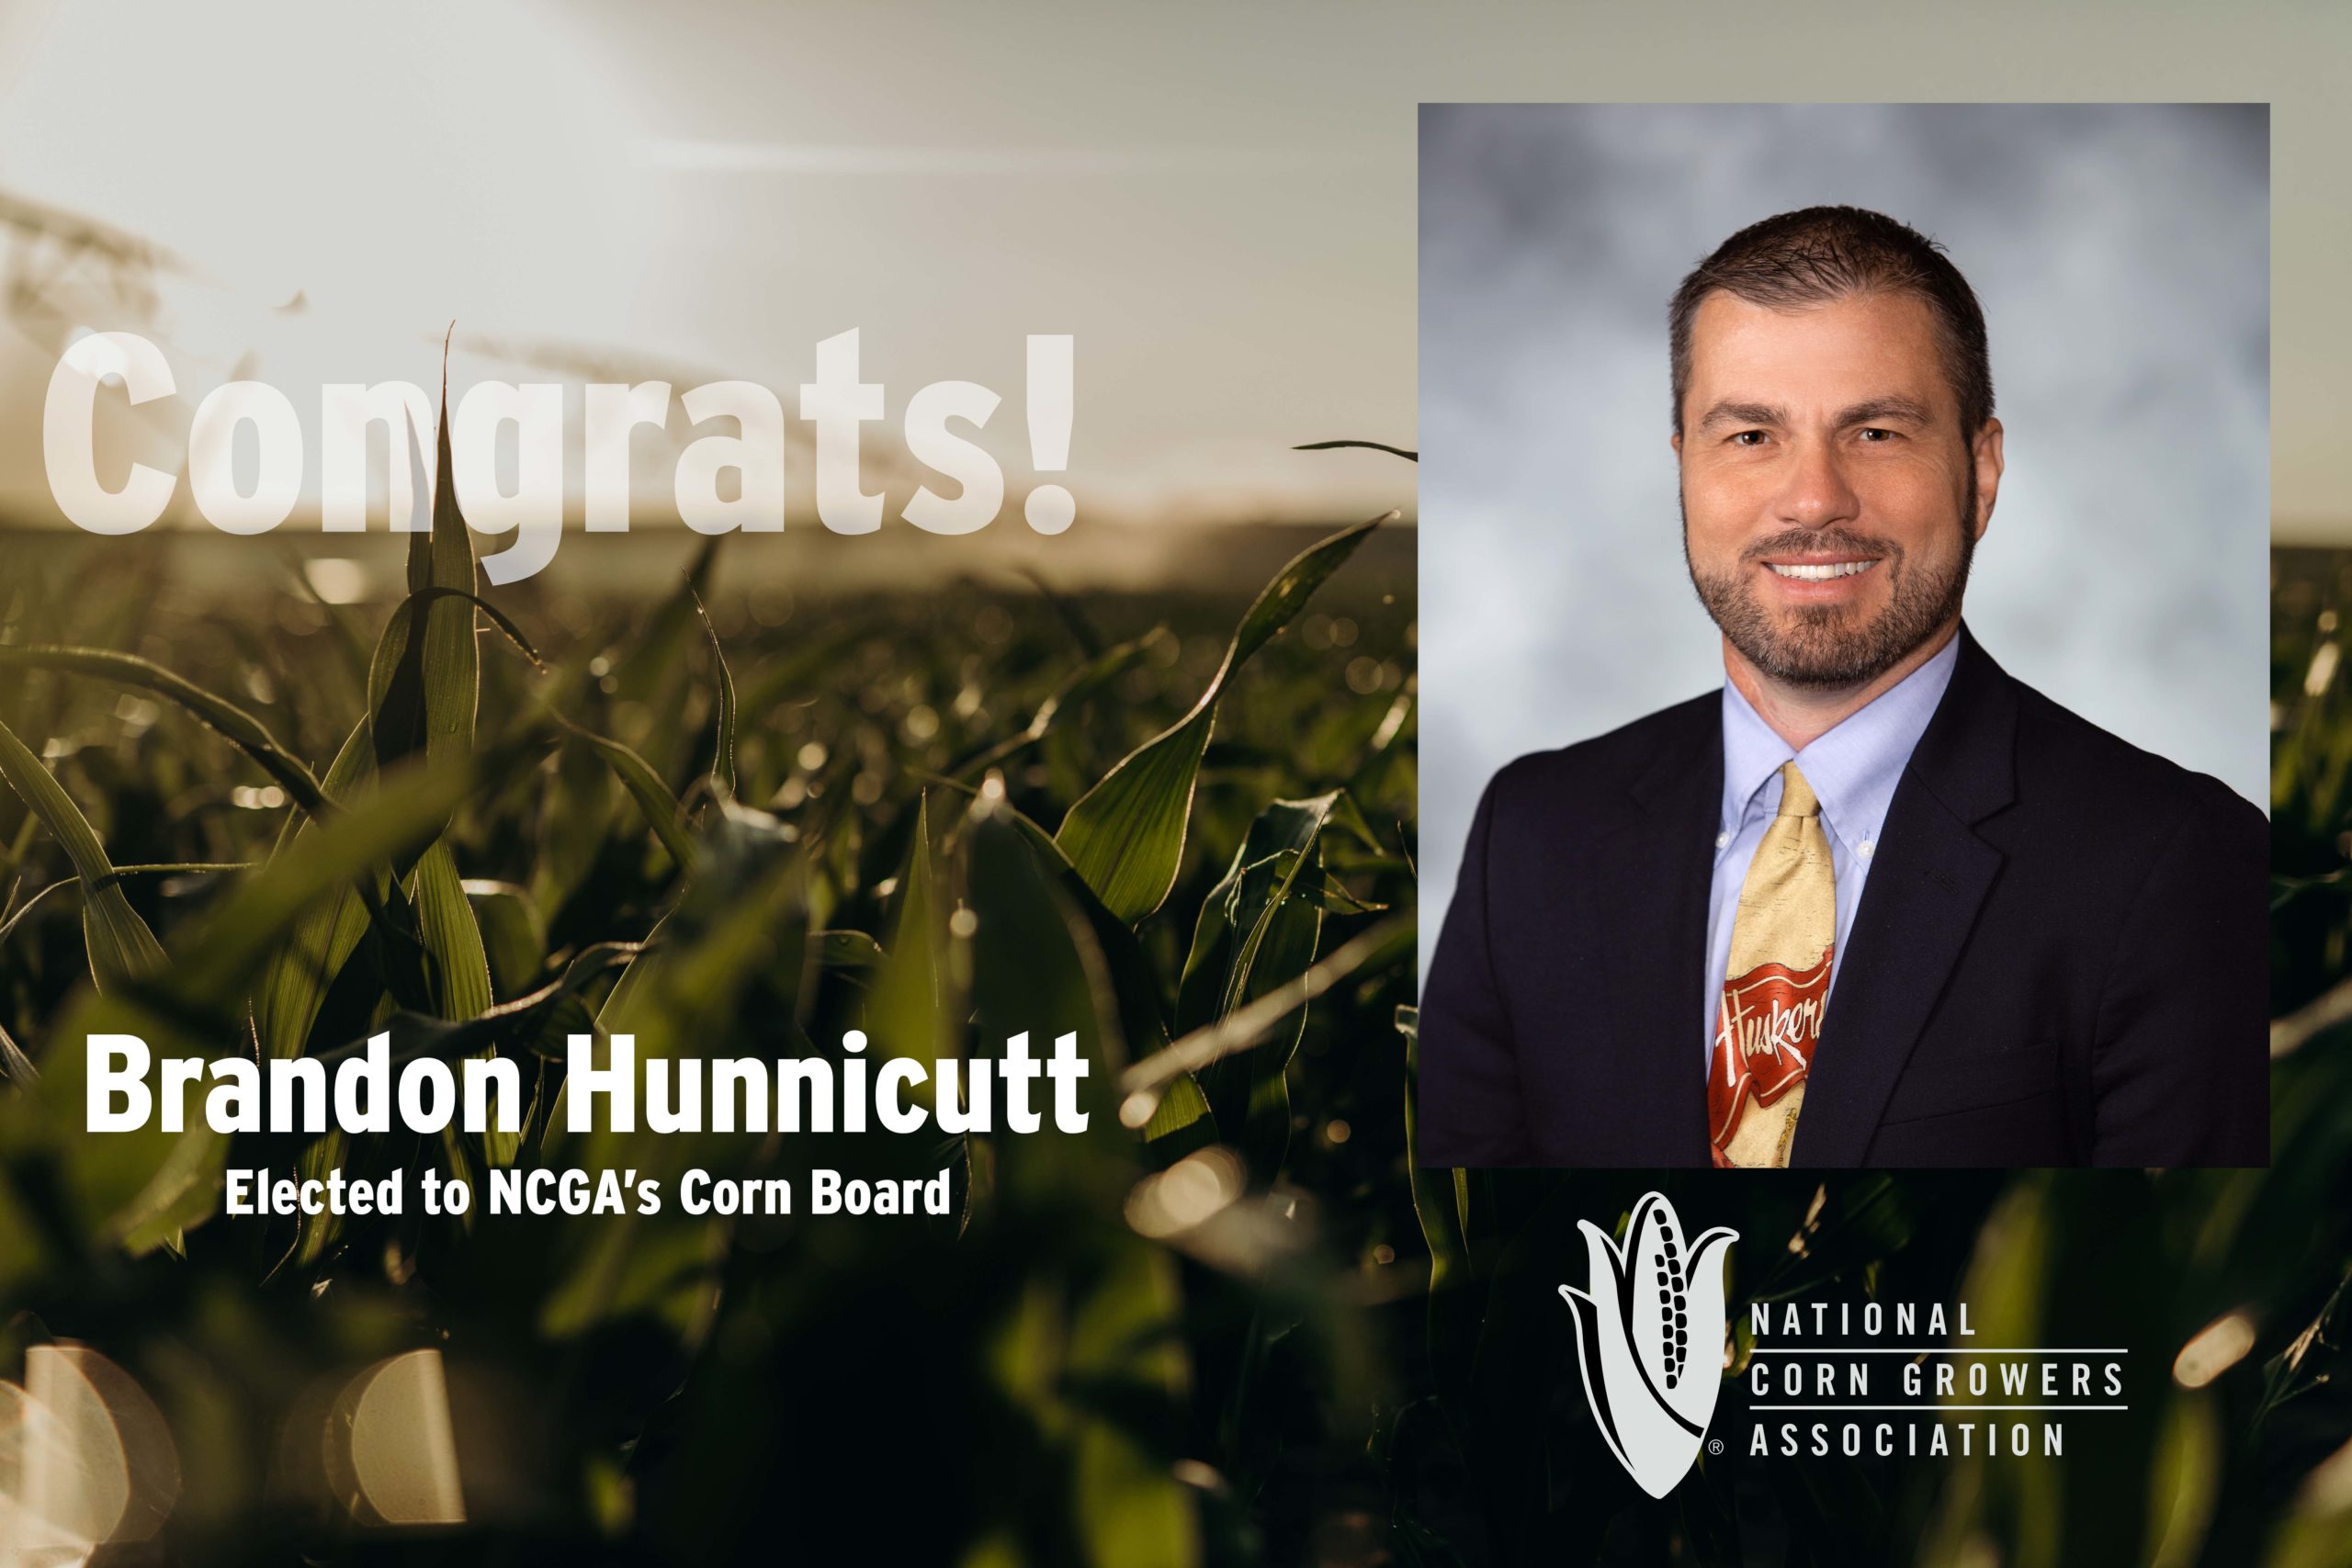 Nebraska Corn Congratulates Hunnicutt on his Election to the NCGA Corn Board